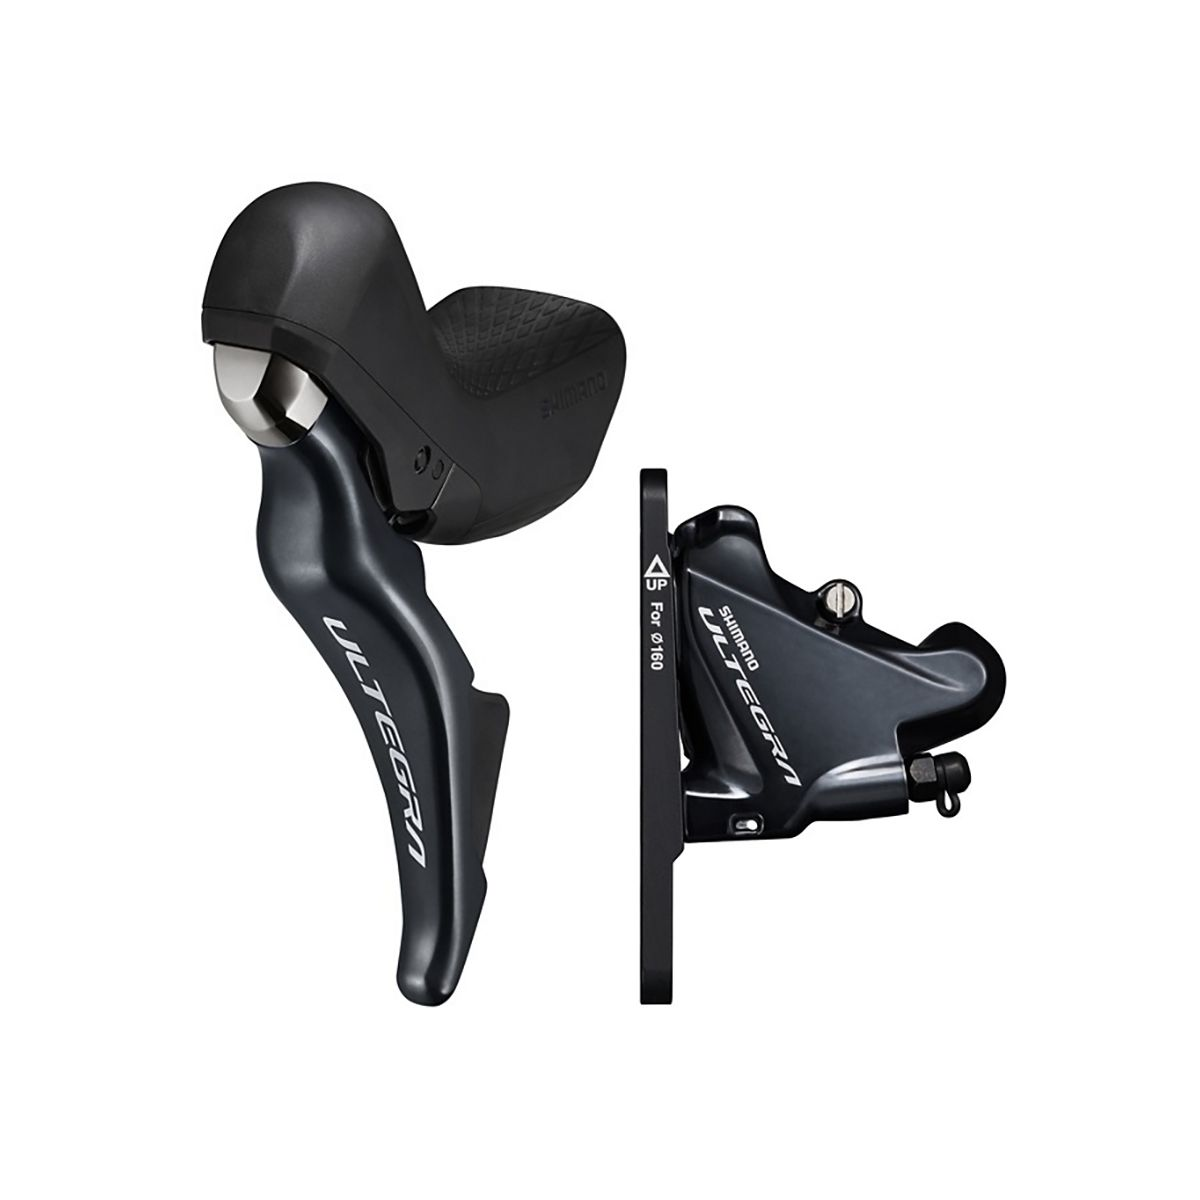 SHIMANO Ultegra ST-R8025 Brake/Shift Lever Combination 2x11 Speed with  BR-R8070 Disc Brake Caliper Front or Rear (for Small Hands)